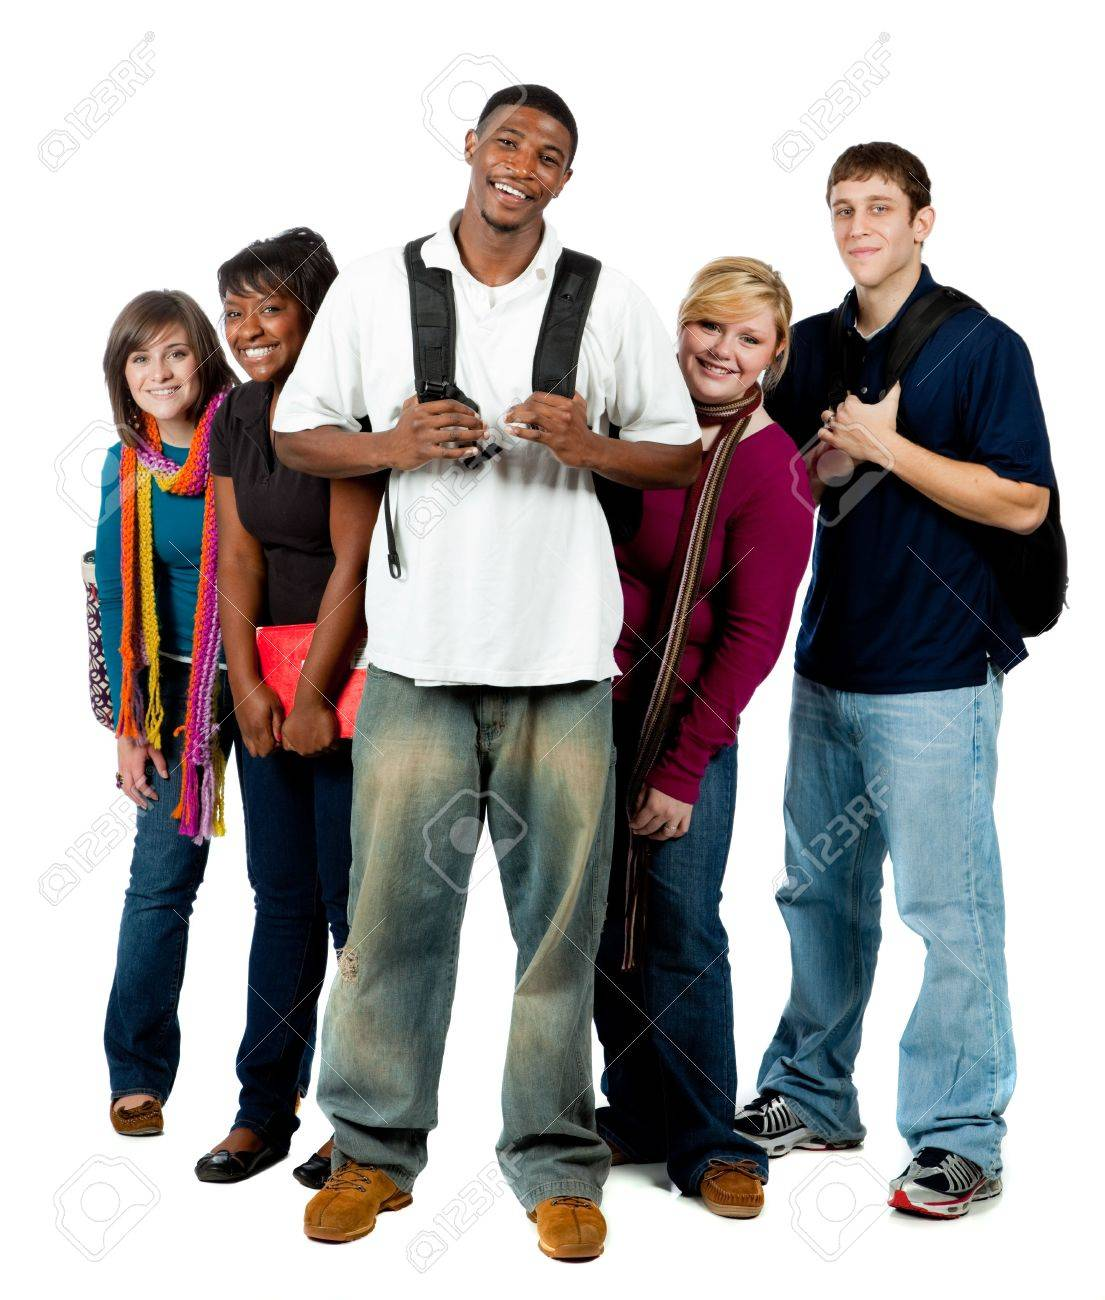 A group of happy multi-racial college students holding backpacks on a white background Stock Photo - 5798408